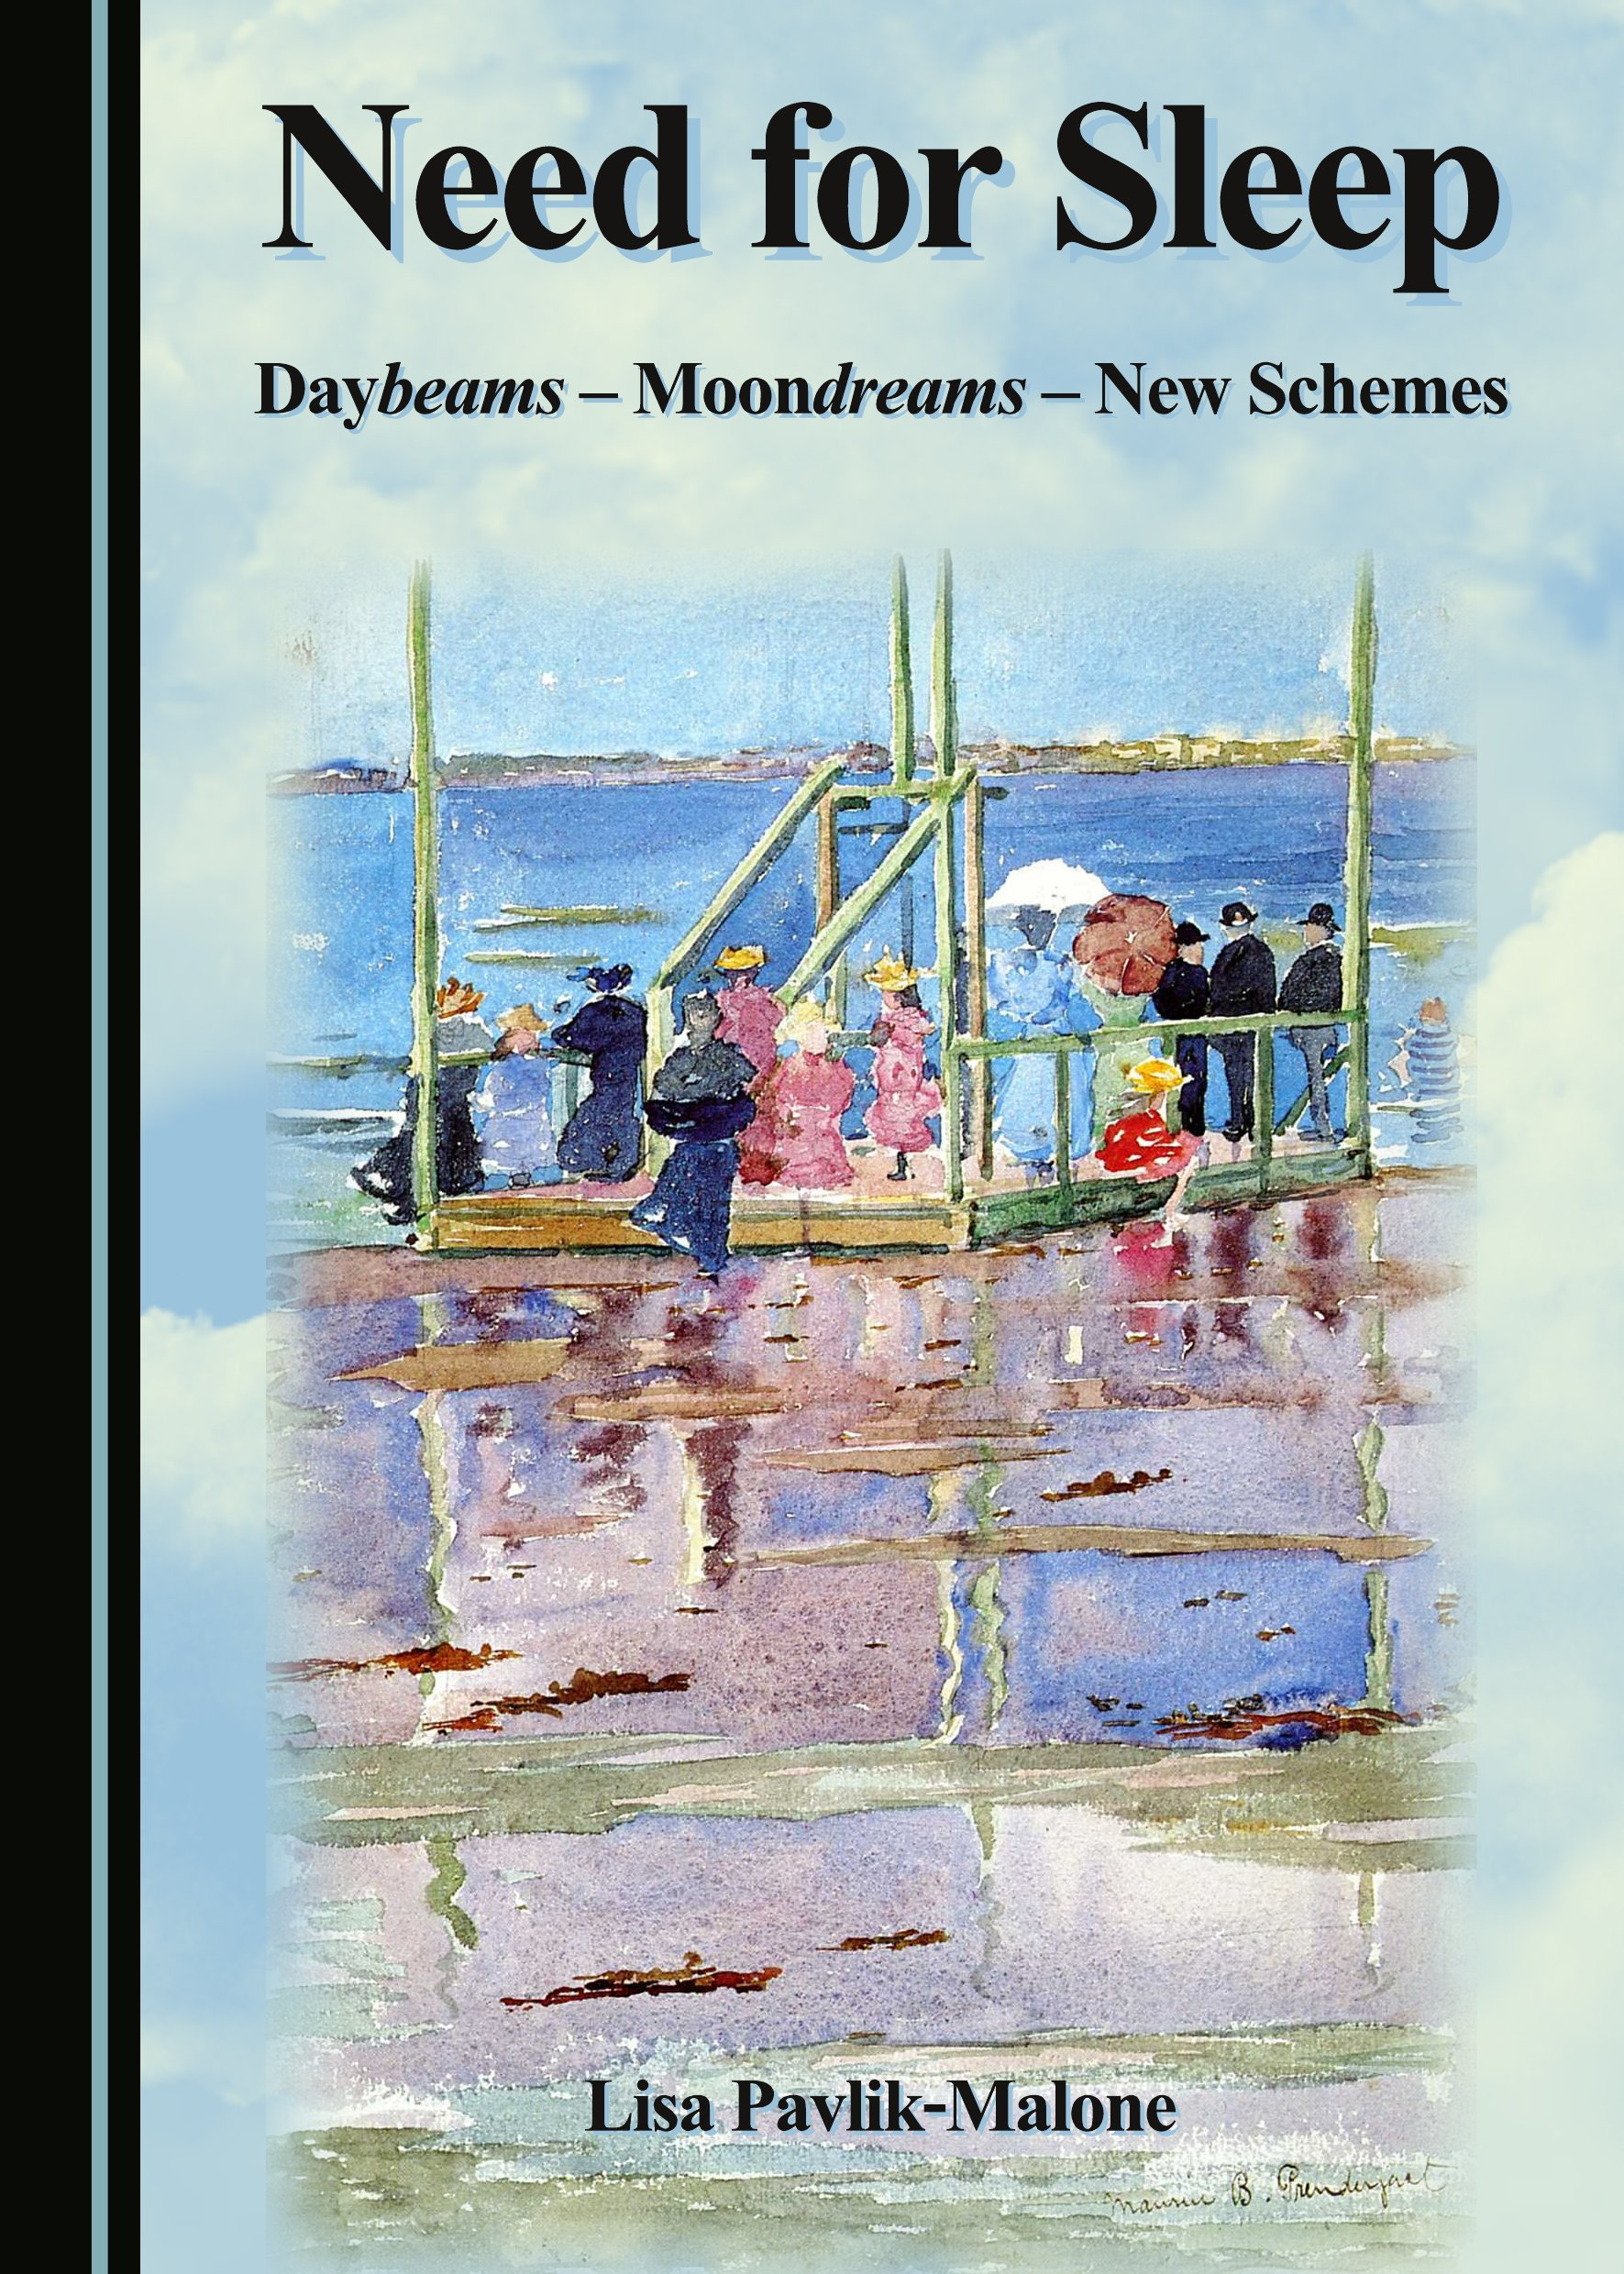 Need for Sleep: Daybeams - Moondreams - New Schemes